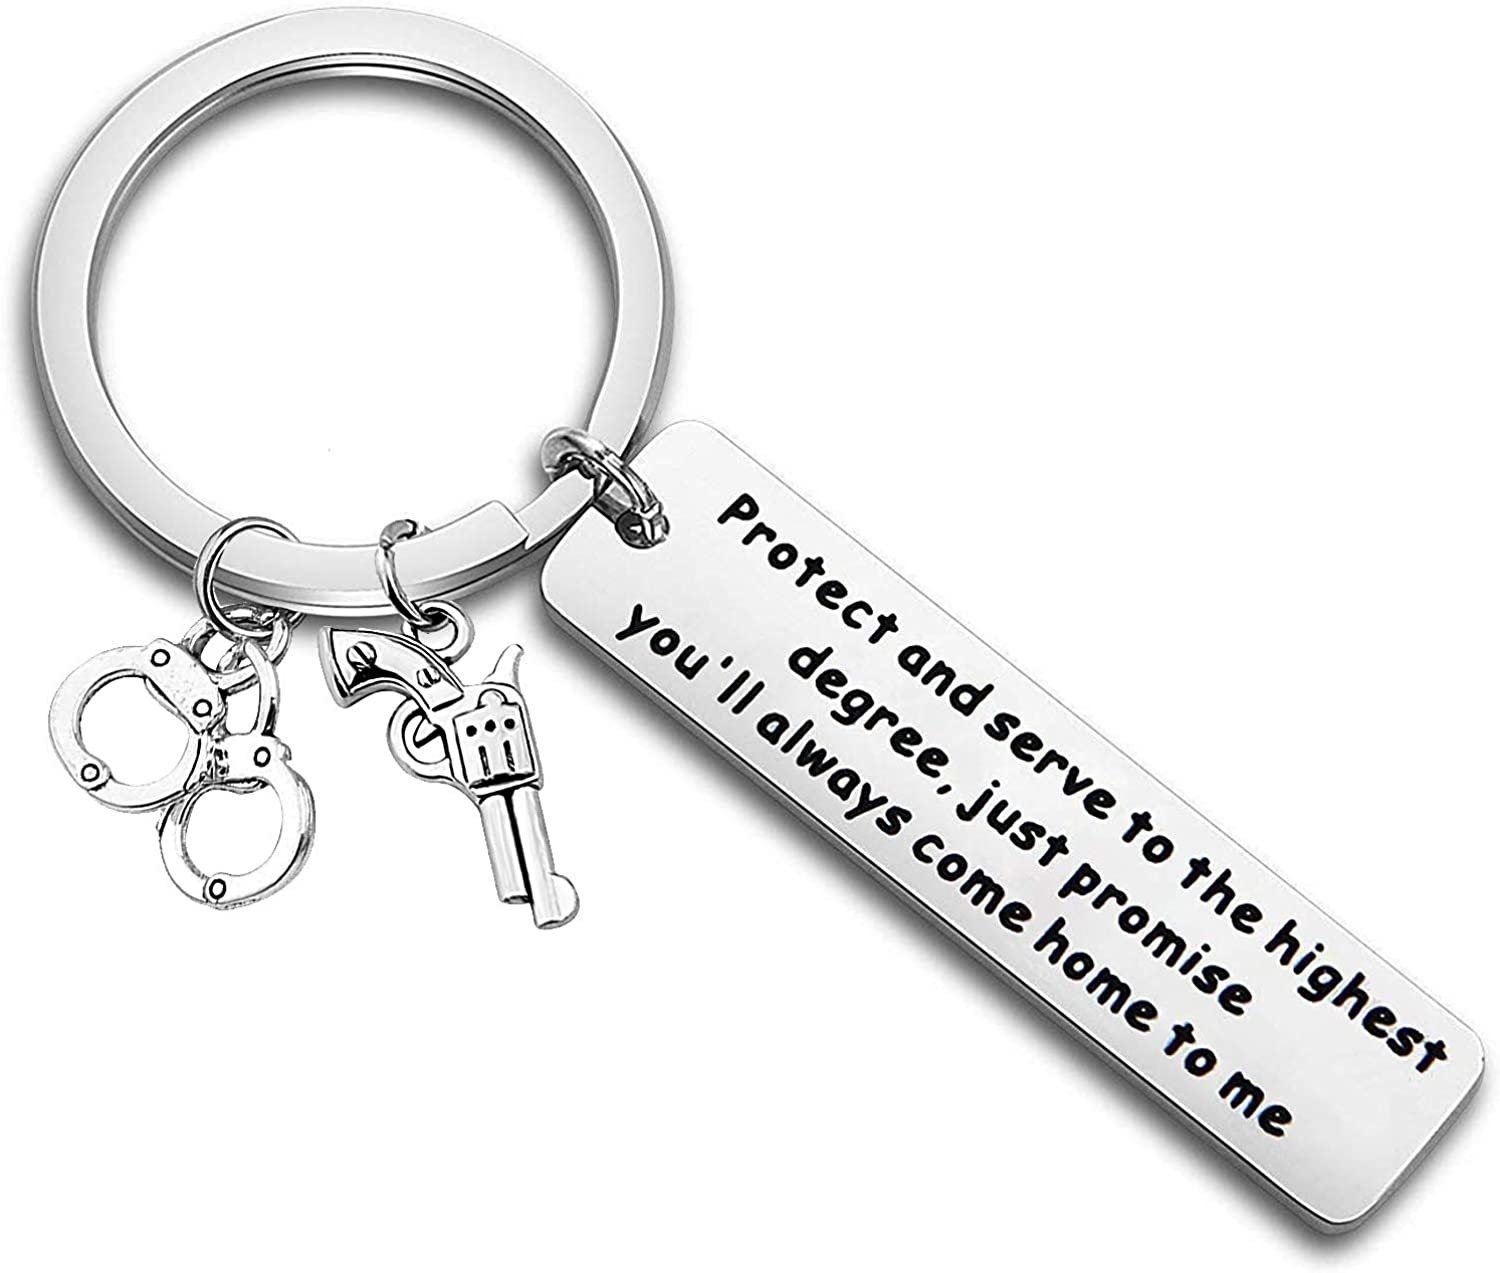 Gzrlyf Police Officer Keychain Protect and Serve to The Highest Degree Always Come Home to Me Deputy Sheriff Gift